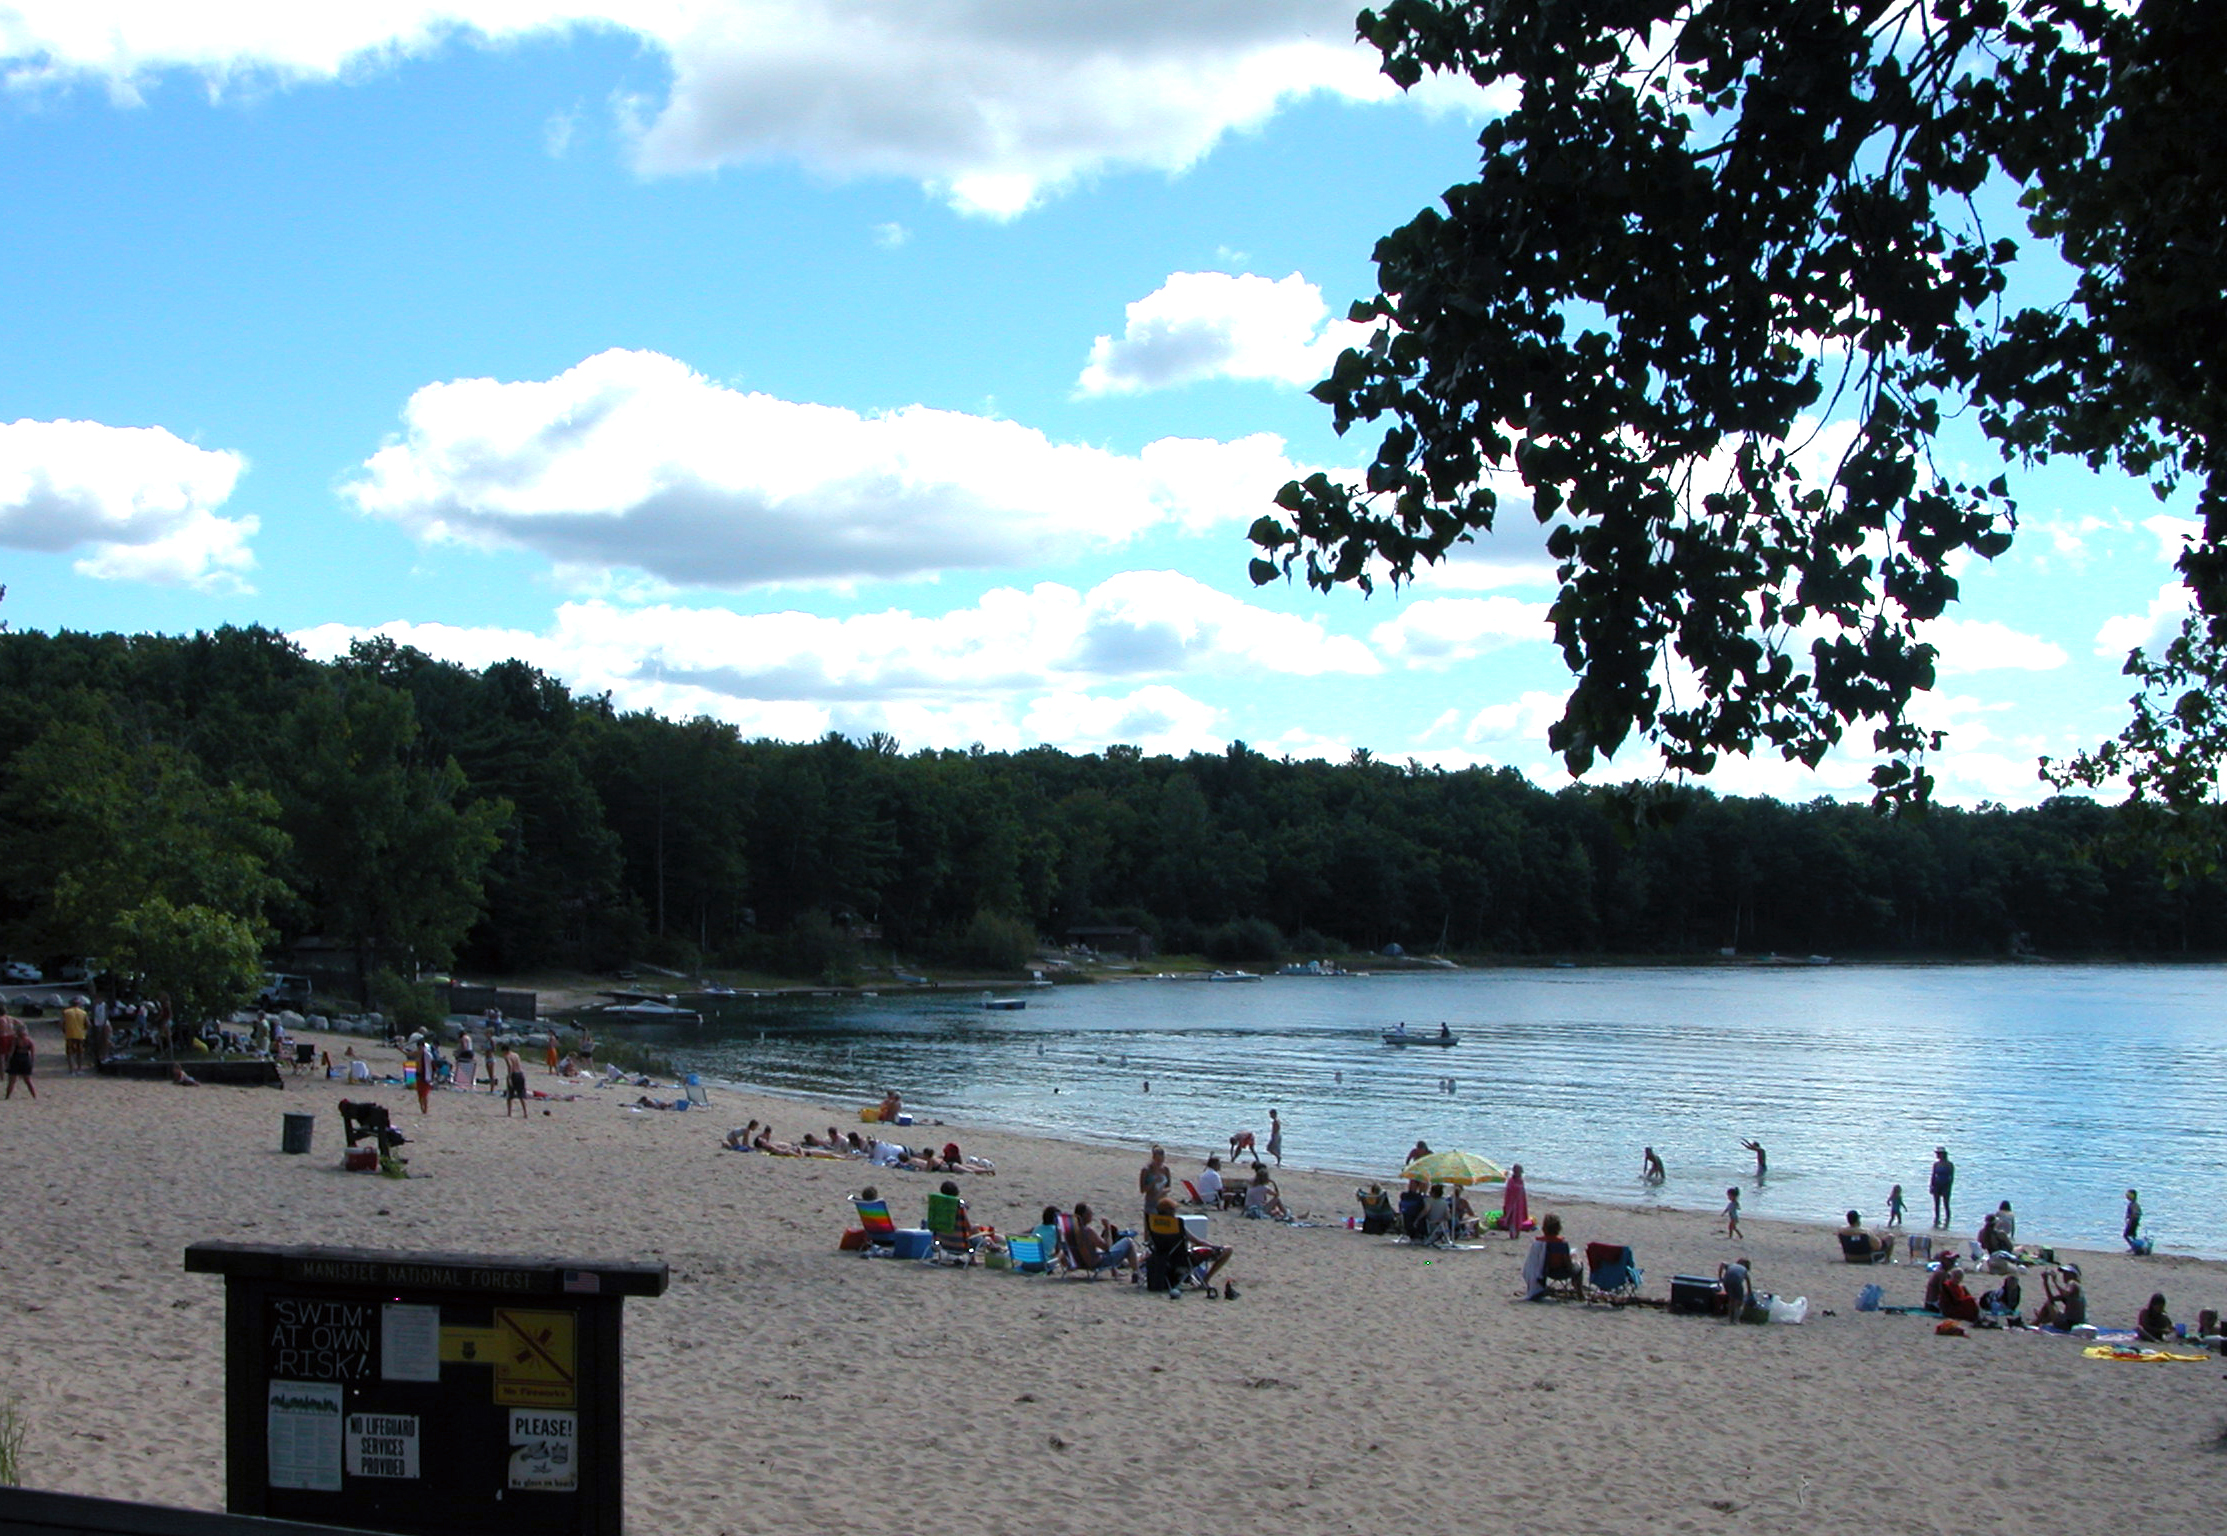 Swimming at Sand Lake Recreation Area